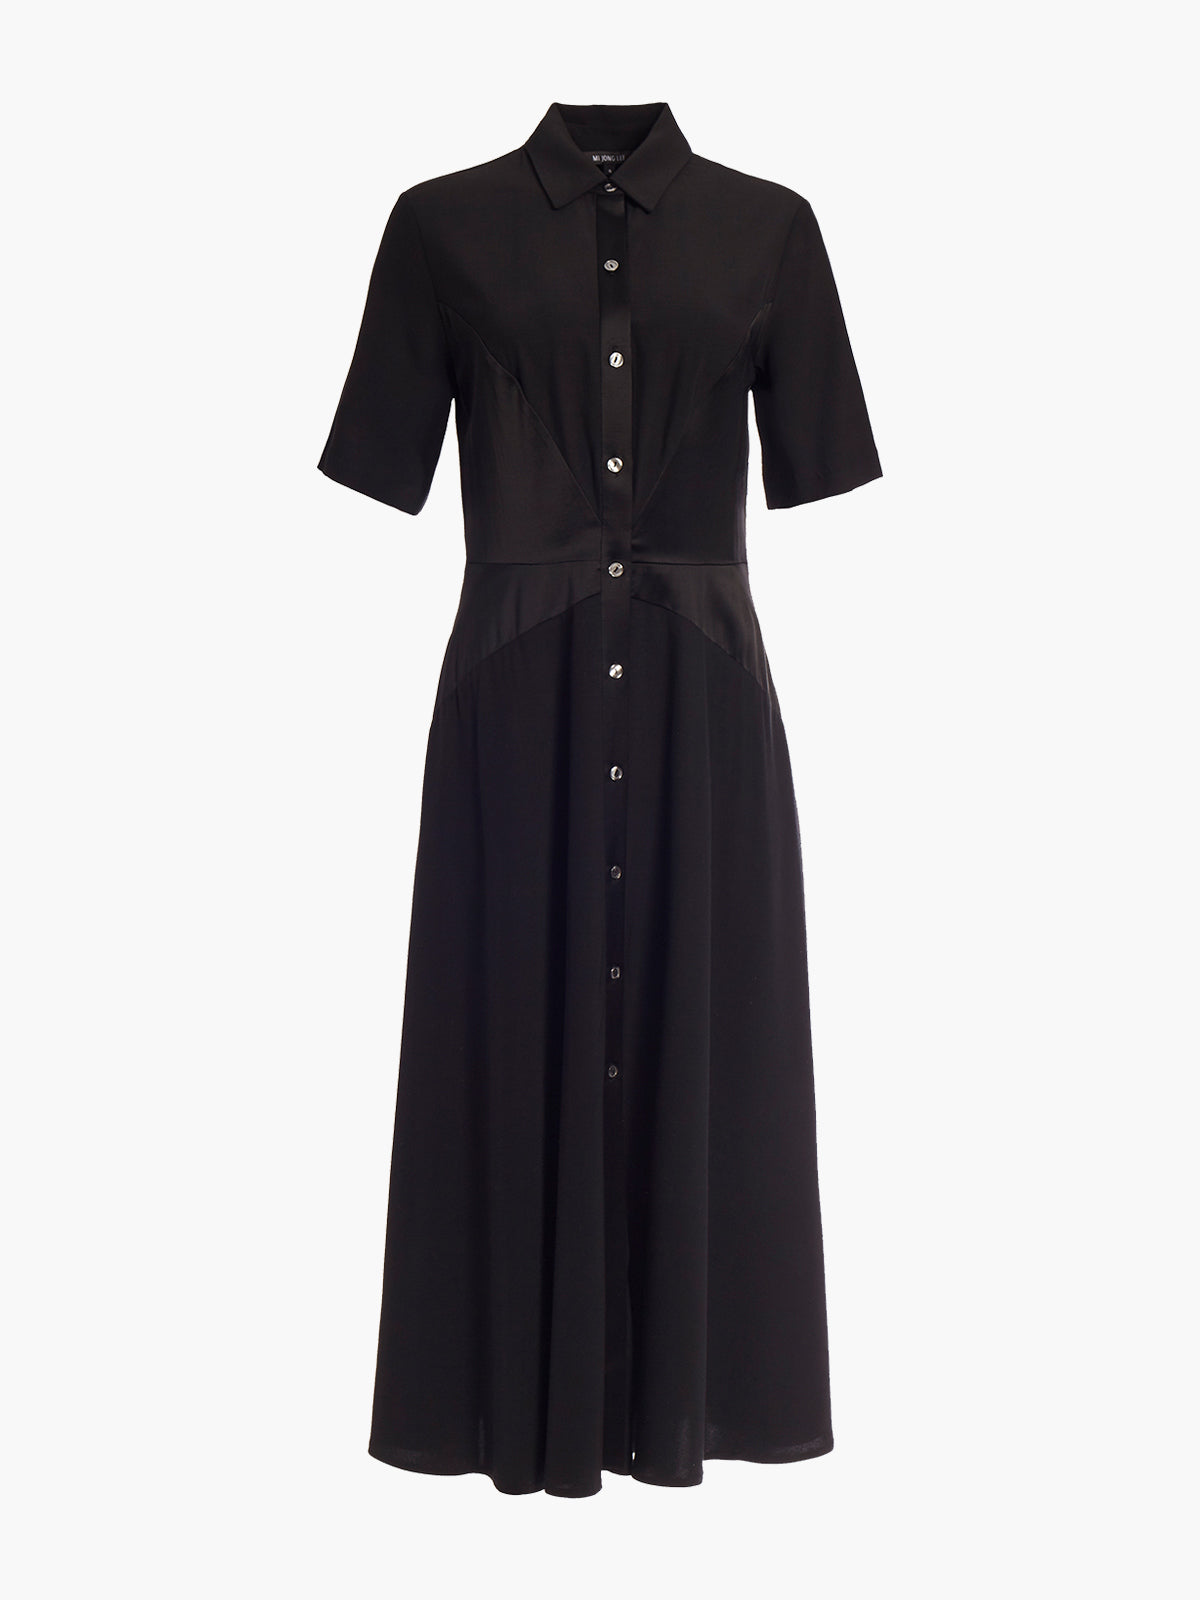 Shirt Dress | Black Shirt Dress | Black